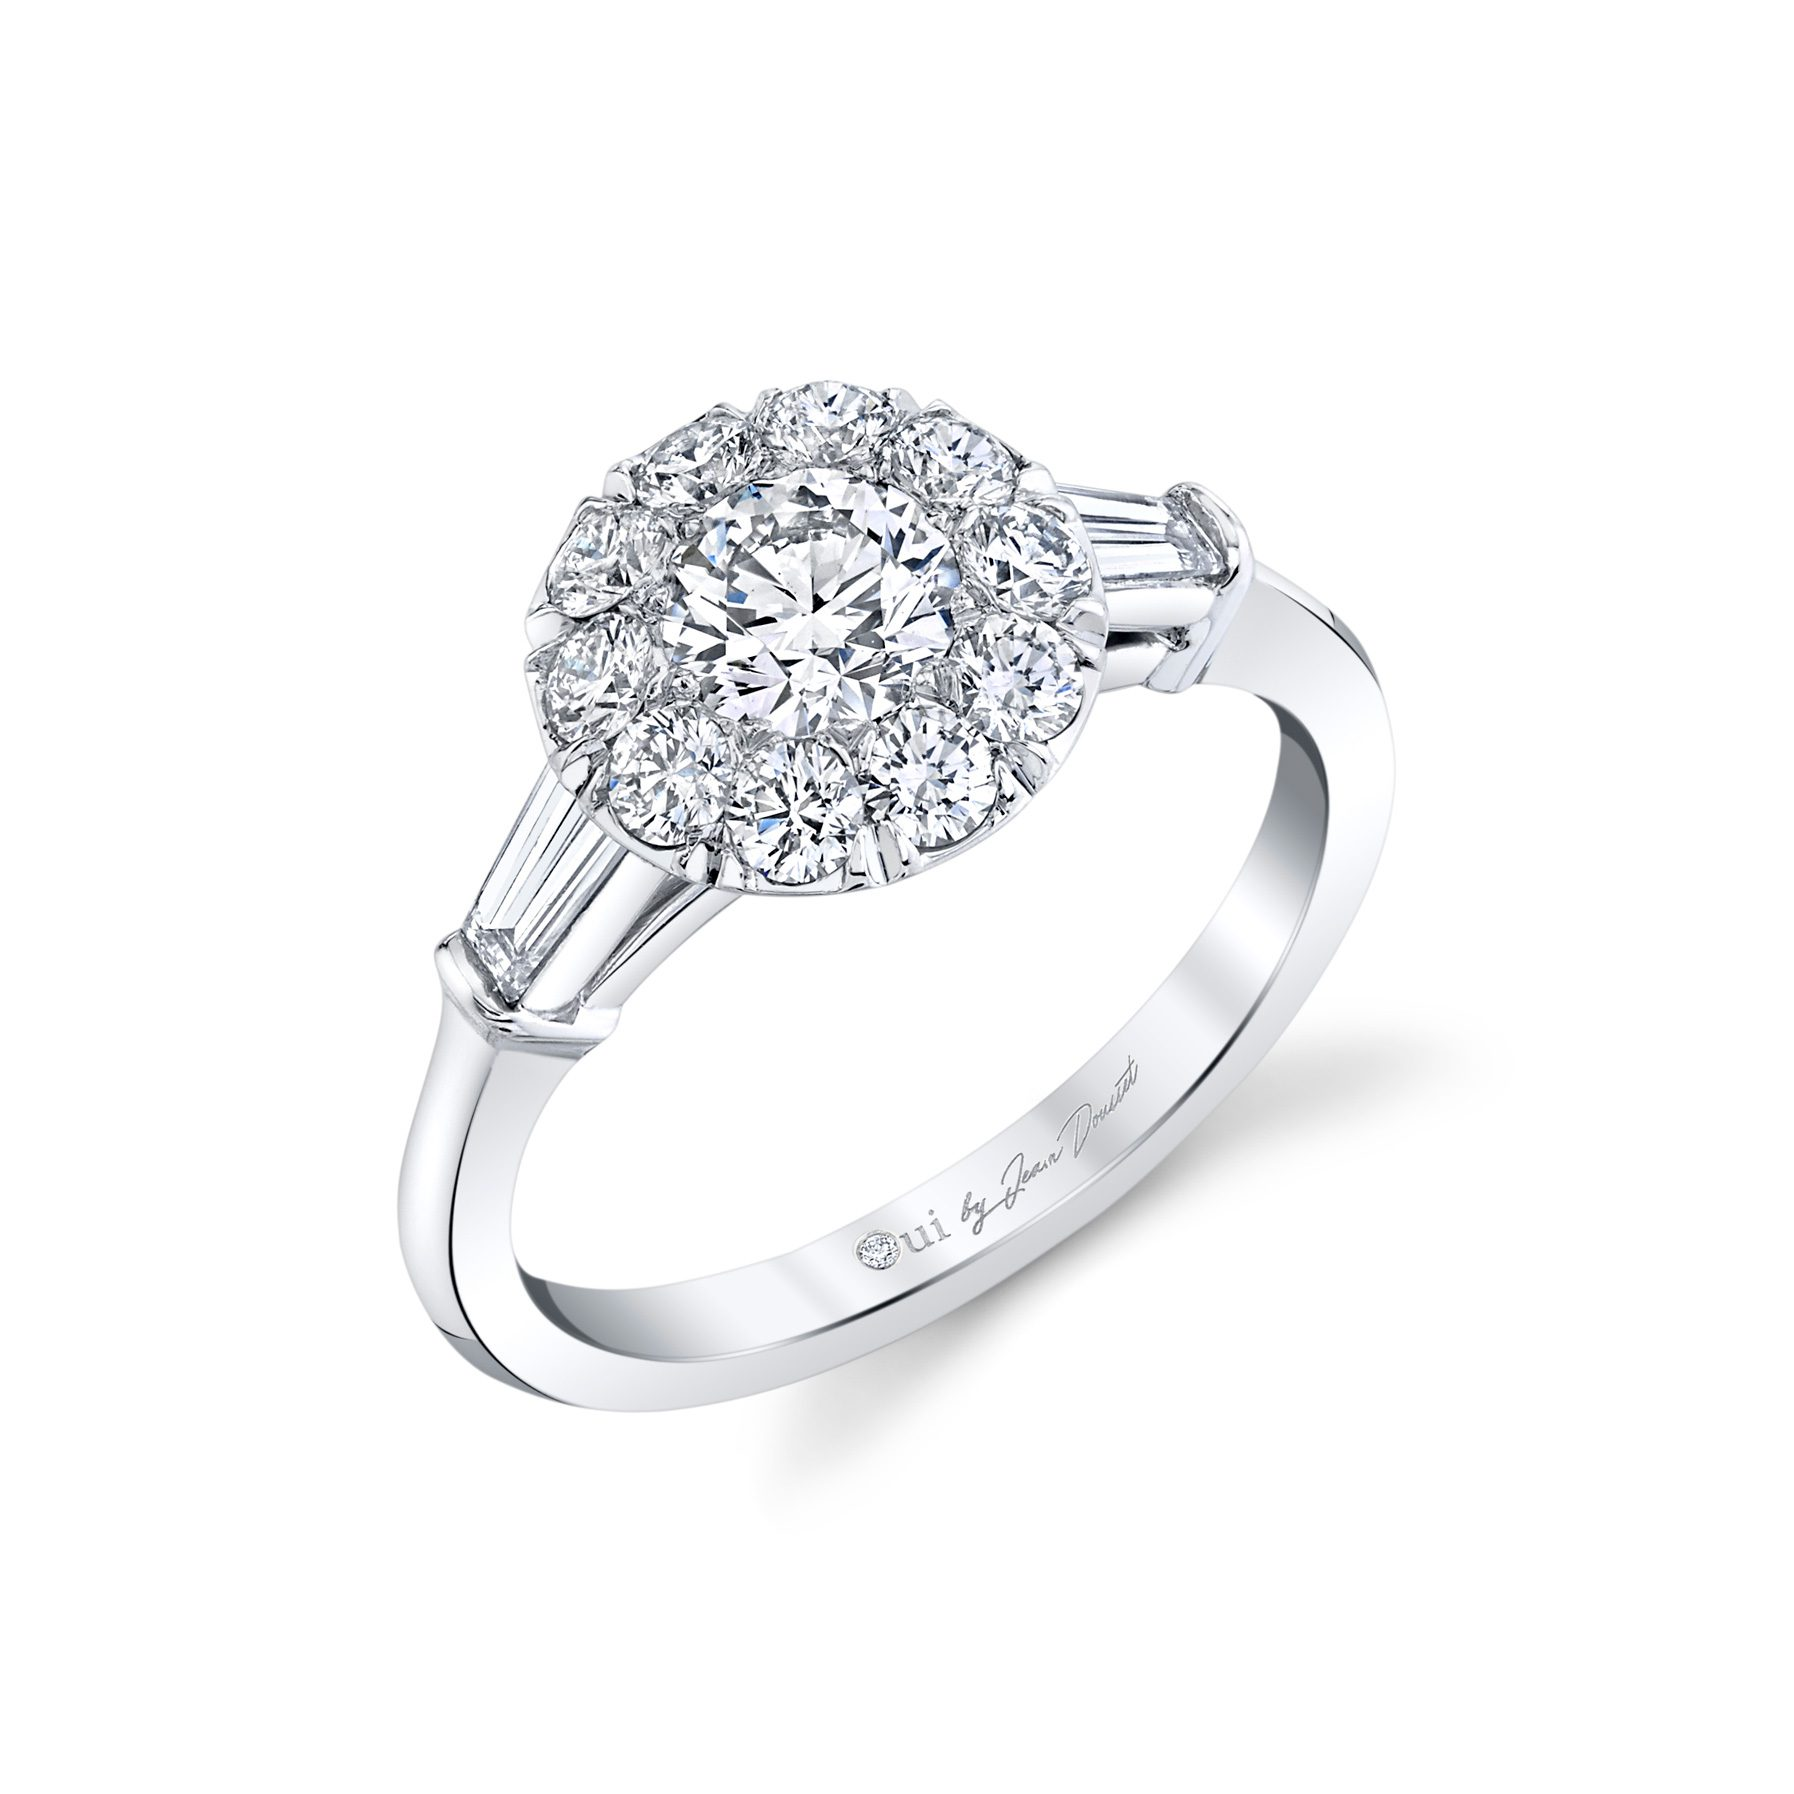 Madeline Round Brilliant Seamless Solitaire® Three Stone Engagement Ring 18k White Gold Profile View by Oui by Jean Dousset